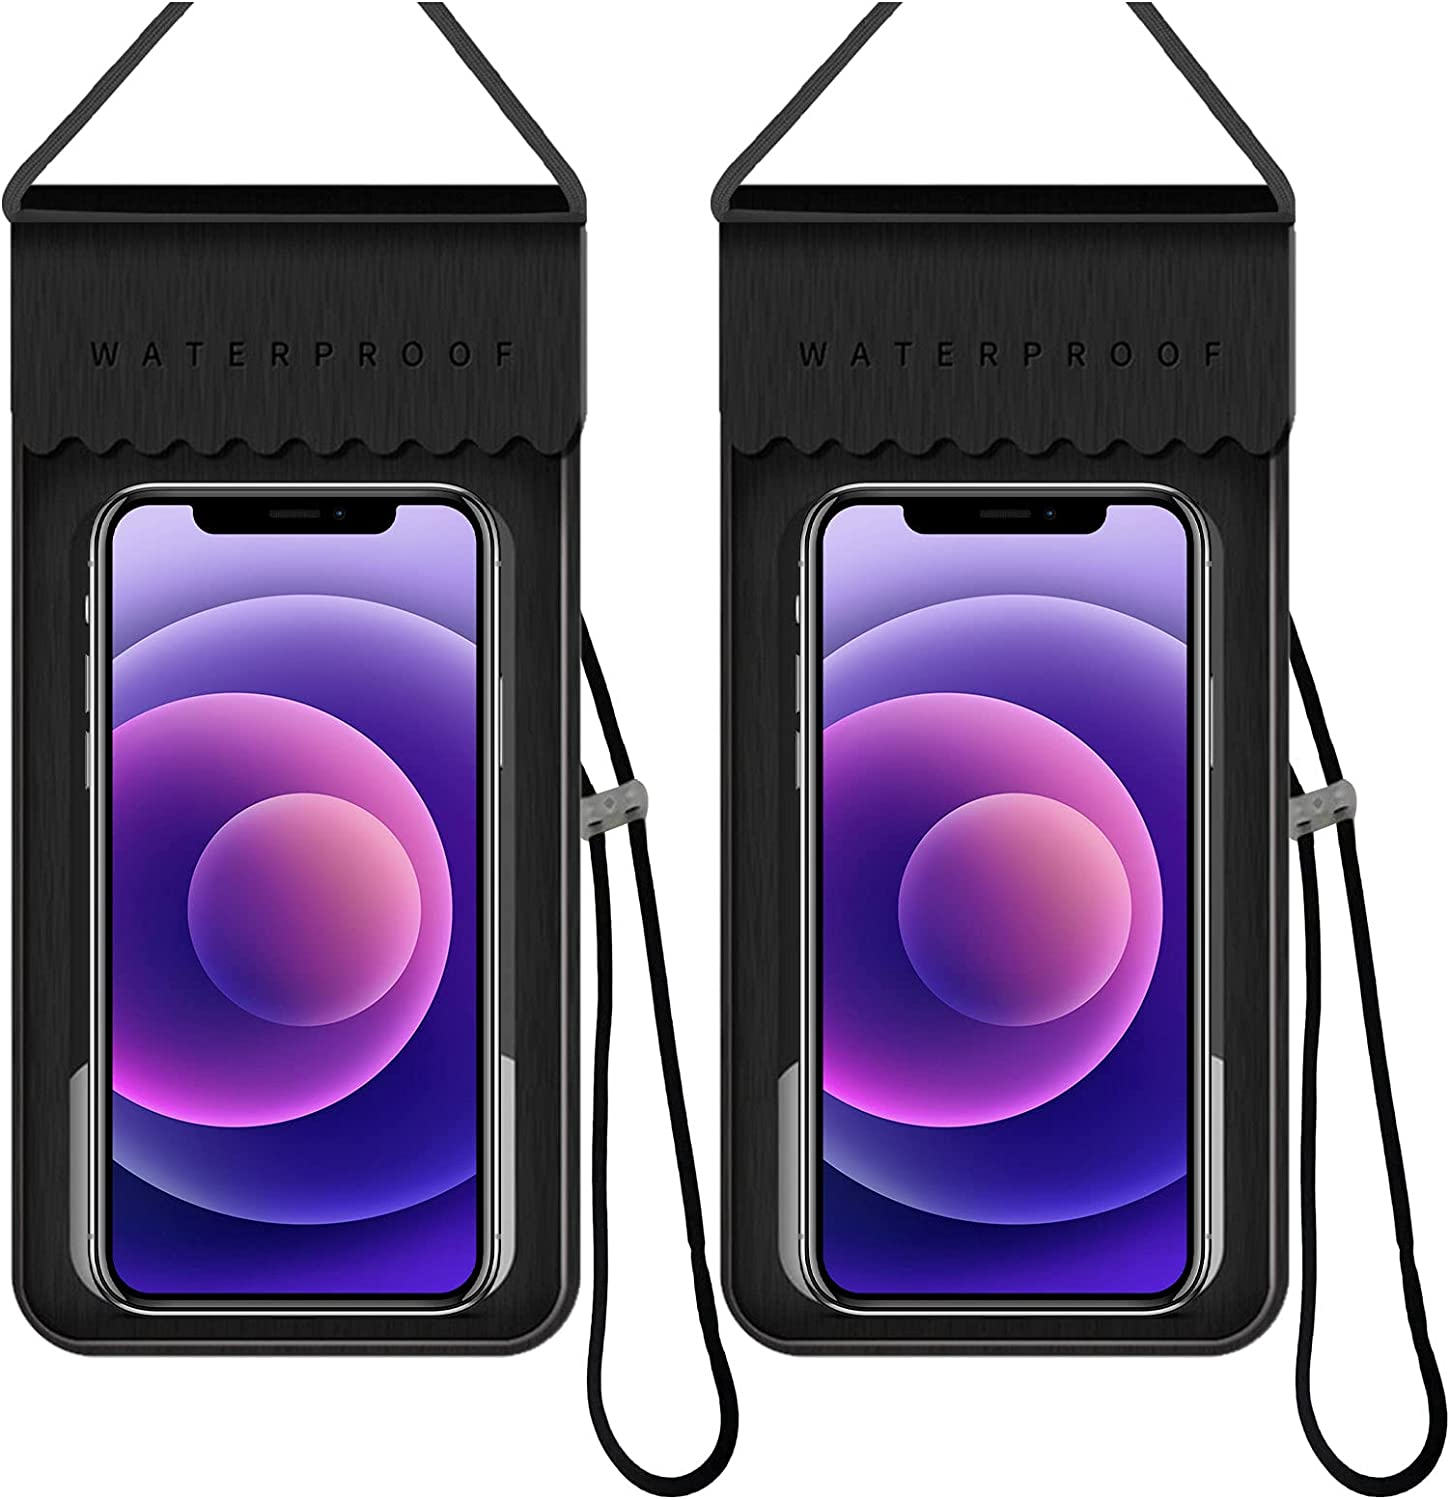 Universal Waterproof Case, IPX8 Cellphone Dry Bag Pouch for iPhone 12/12 Pro Max/11/11 Pro/SE/Xs Max/XR, Touchscreen Waterproof Phone Pouch for Samsung S21/S20 Ultra/Note20/10 up to 7